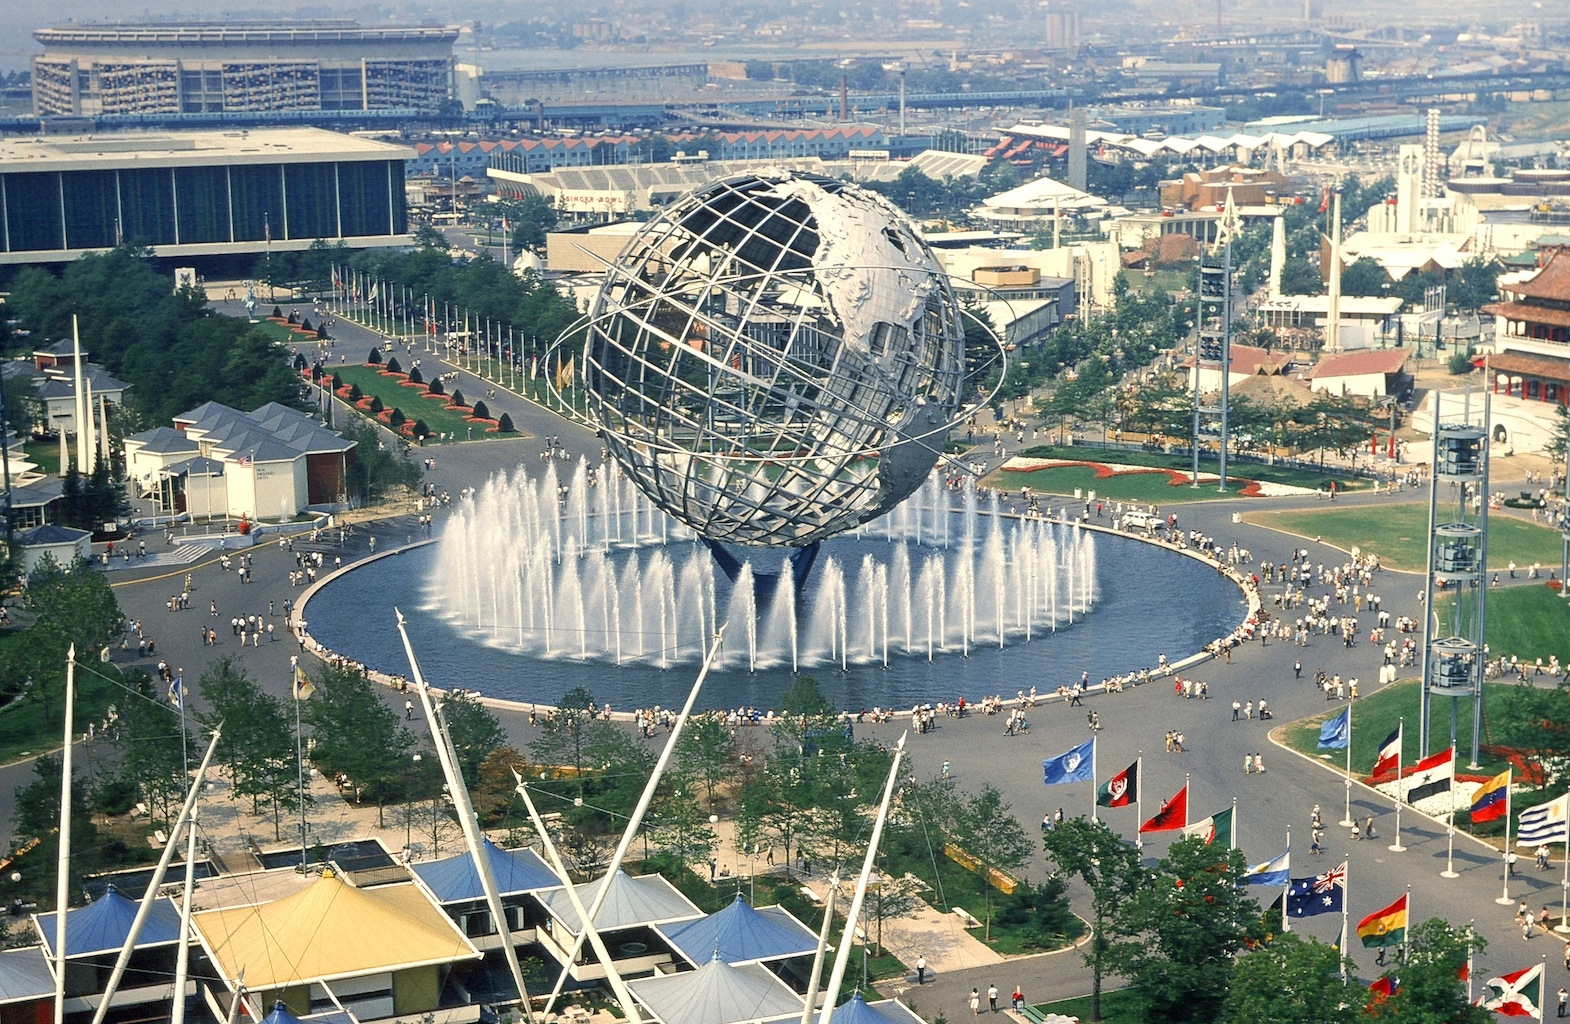 In the years leading up to the 1964 World's Fair, in the New York City ...: www.jta.org/2014/04/25/news-opinion/the-telegraph/from-the-archives...